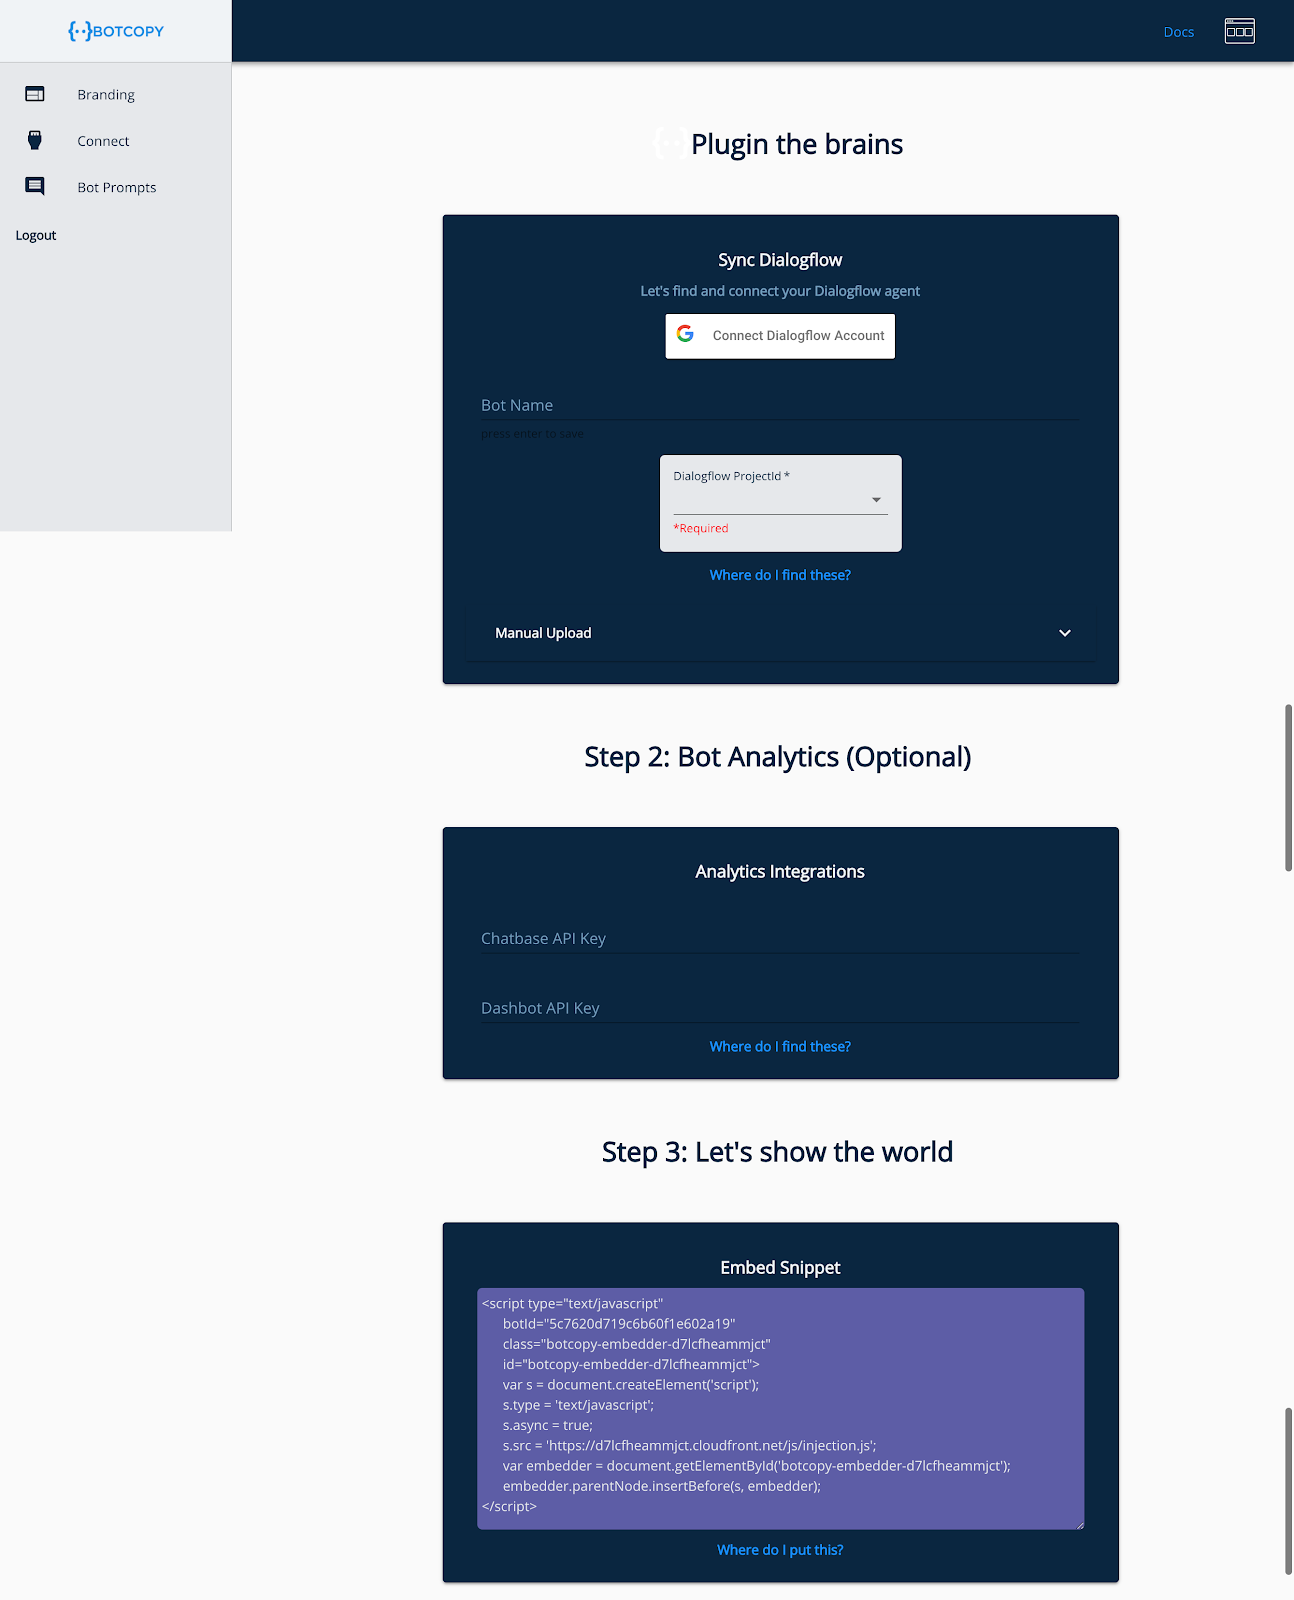 How to integrate Dialogflow into your website in minutes, not months